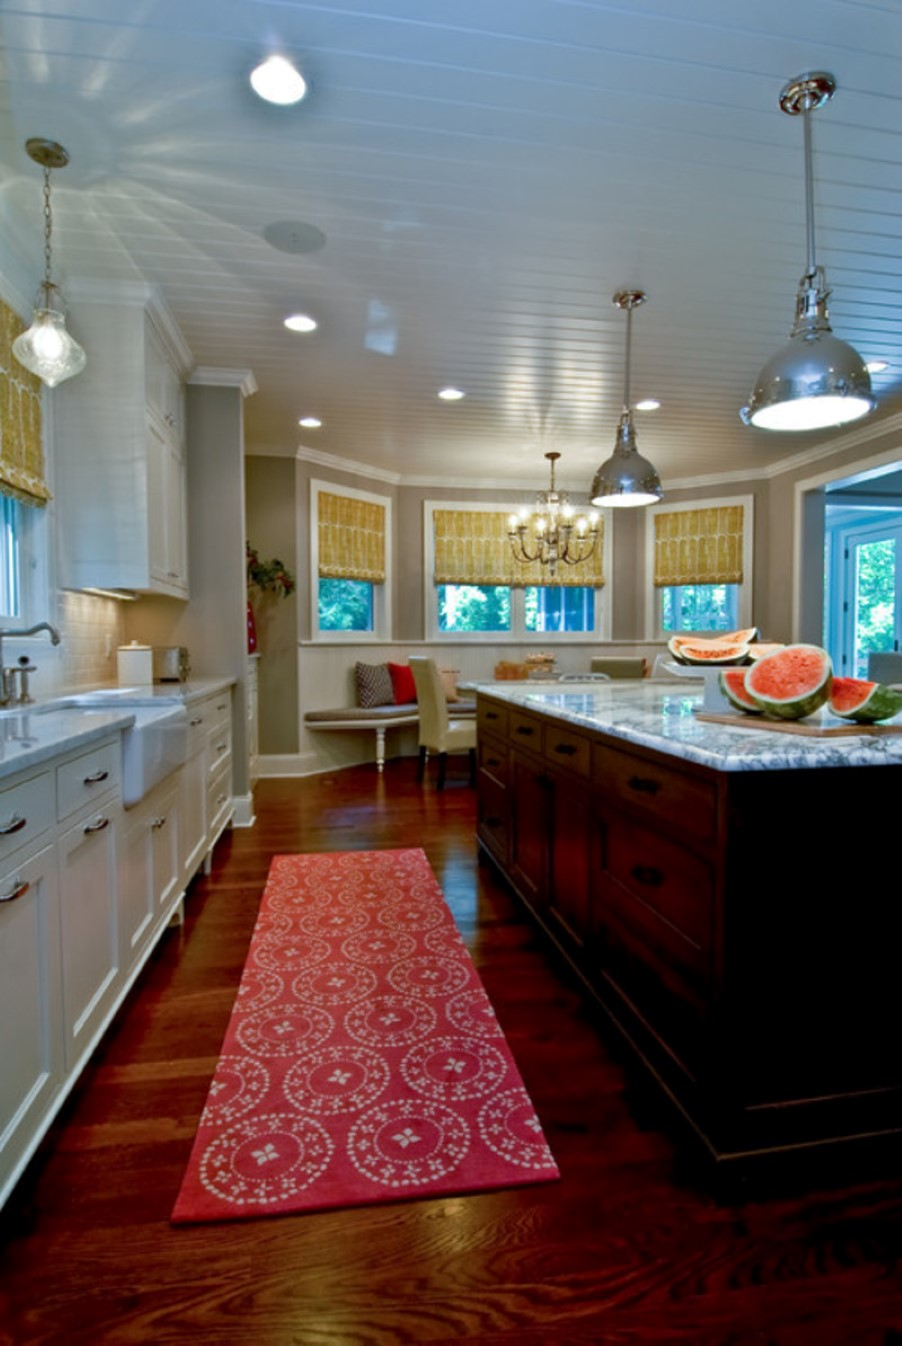 Galley Kitchen Ideas Some Vintage And Stylish Kitchen Mat And Rug Ideas | Homesfeed